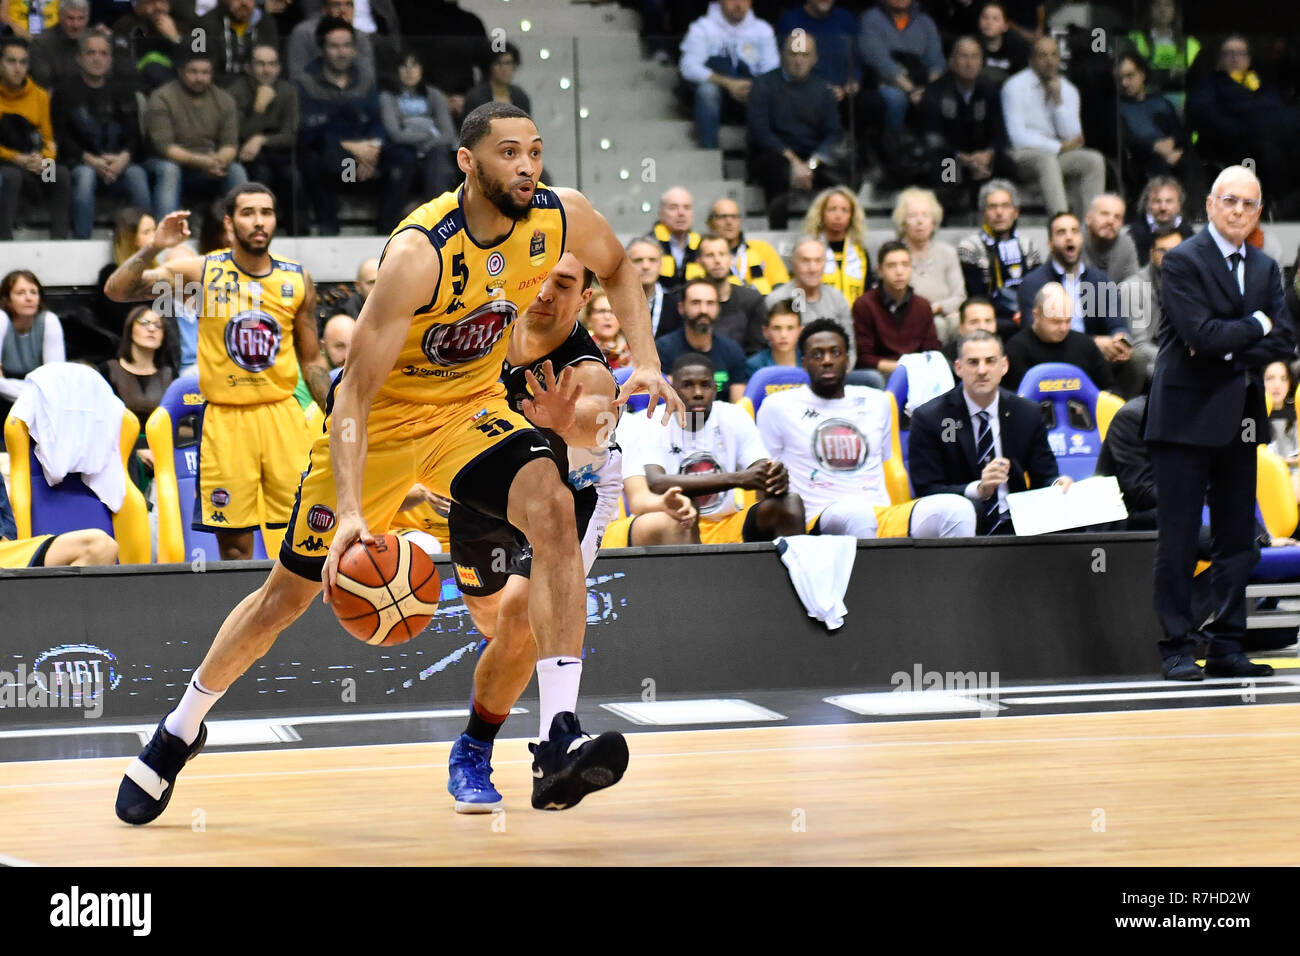 Turin, Italy. 8th Dec 2018. Darington Hobson (Auxilium Fiat Torino) during the LEGA BASKET SERIE A 2018/19 basketball match between FIAT AUXILIUM TORINO vs DOLOMITI TRENTO at PalaVela on 8th Dicember, 2018 in Turin, Italy. Credit: FABIO PETROSINO/Alamy Live News - Stock Image